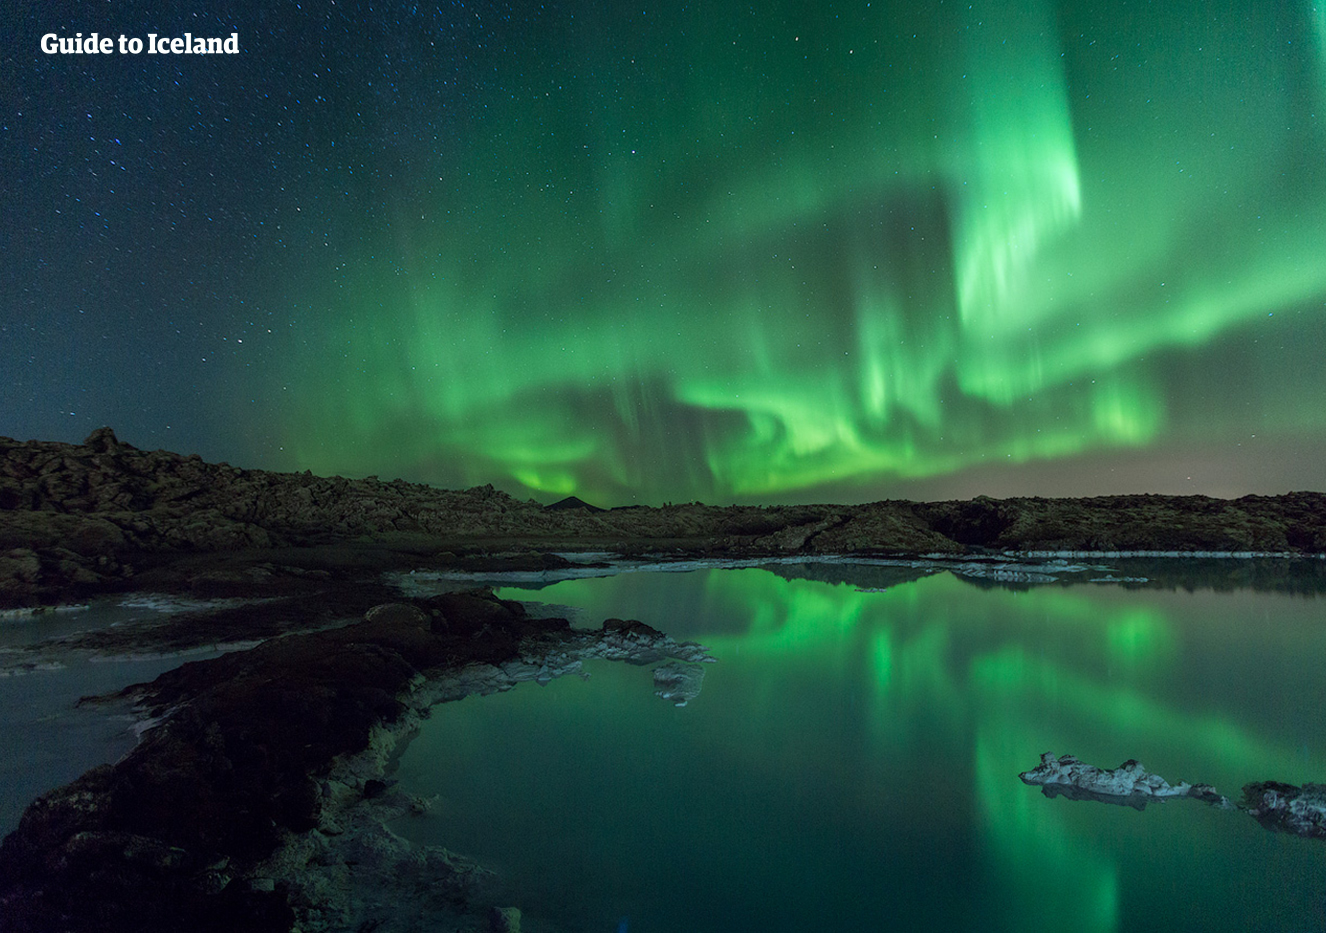 The Elusive Northern Lights Guided Tour Guide To Iceland